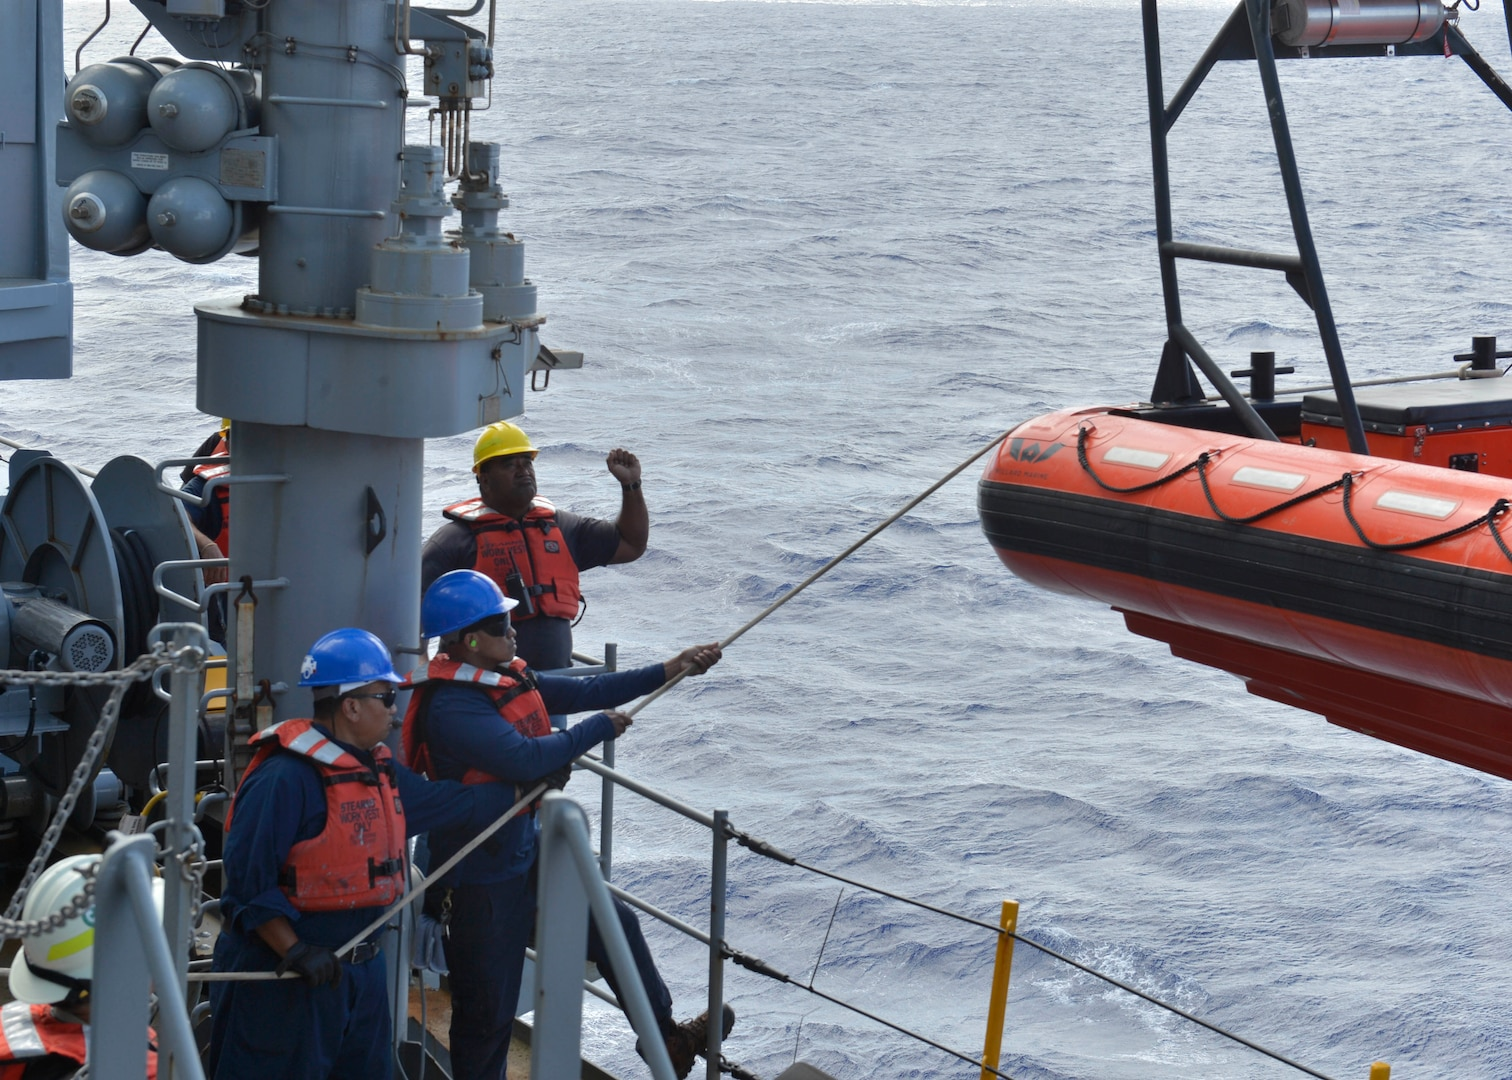 ilitary Sealift Command civilian mariners man the lines of a rigid-hull inflatable boat while participating in a man overboard drill aboard the submarine tender USS Frank Cable (AS 40) during sea trials, Dec. 17, 2019.